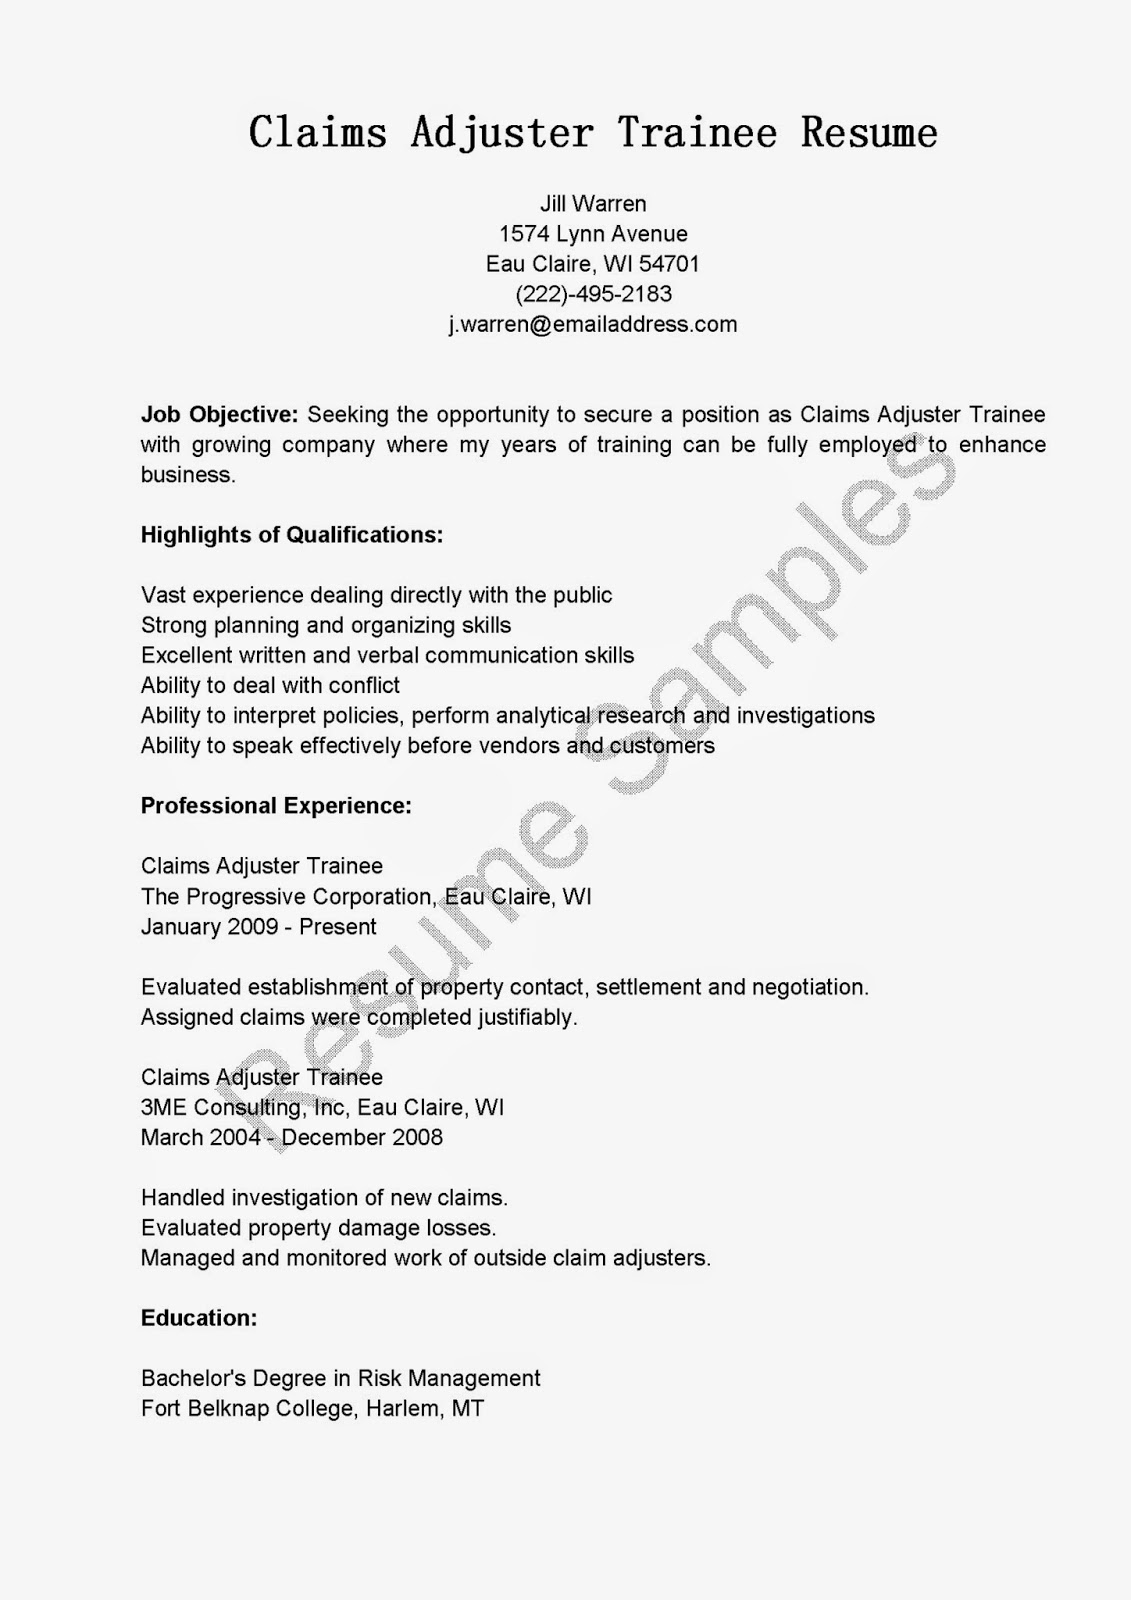 sample resume claims adjuster trainee